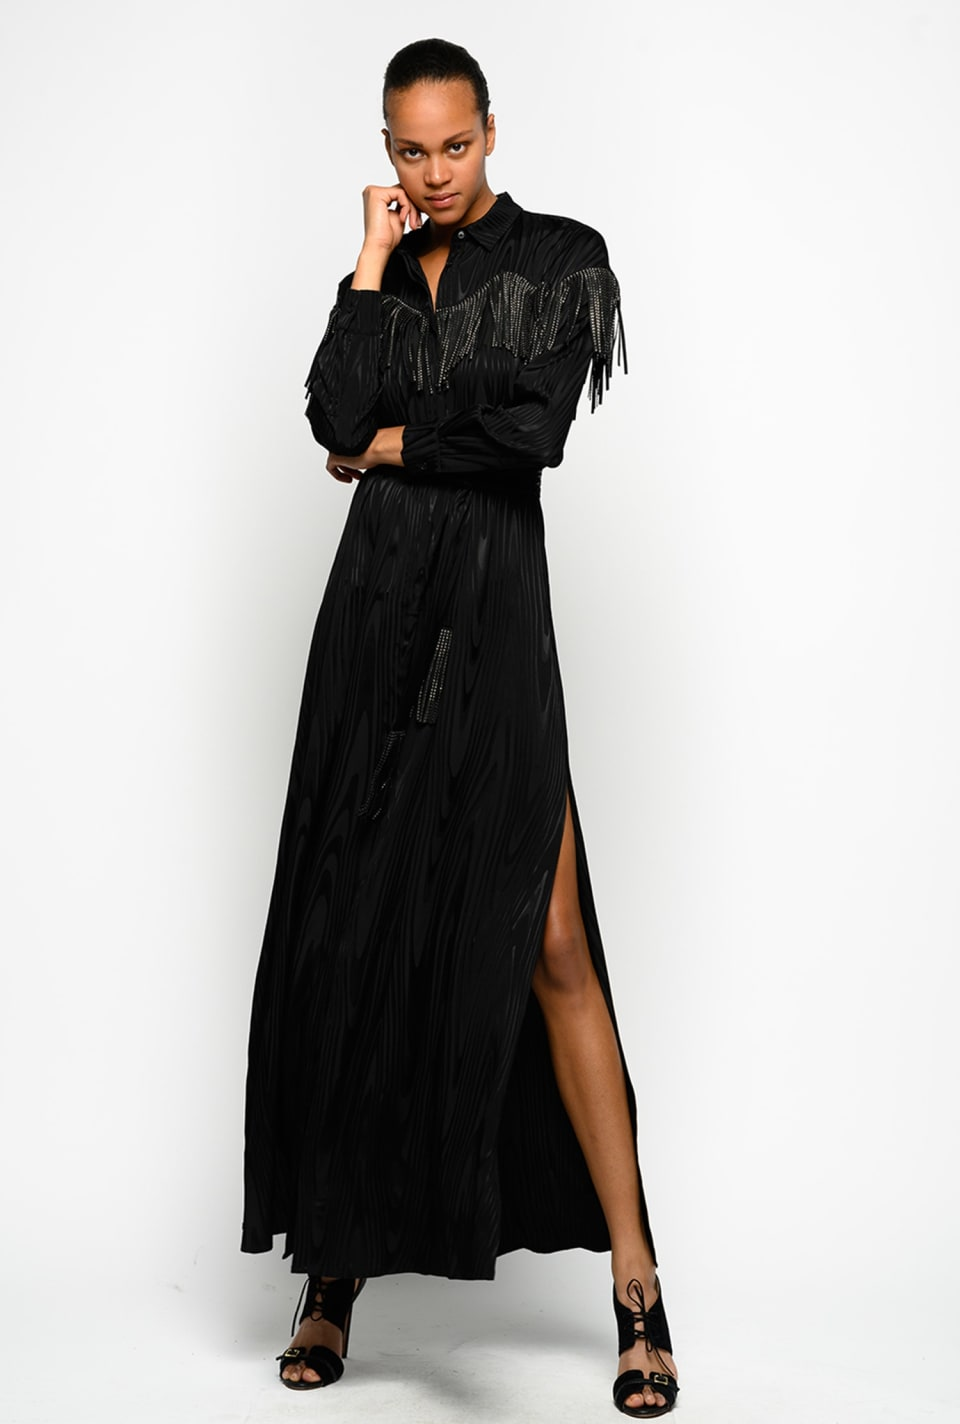 Long shirtwaister dress with rhinestone fringe - Pinko